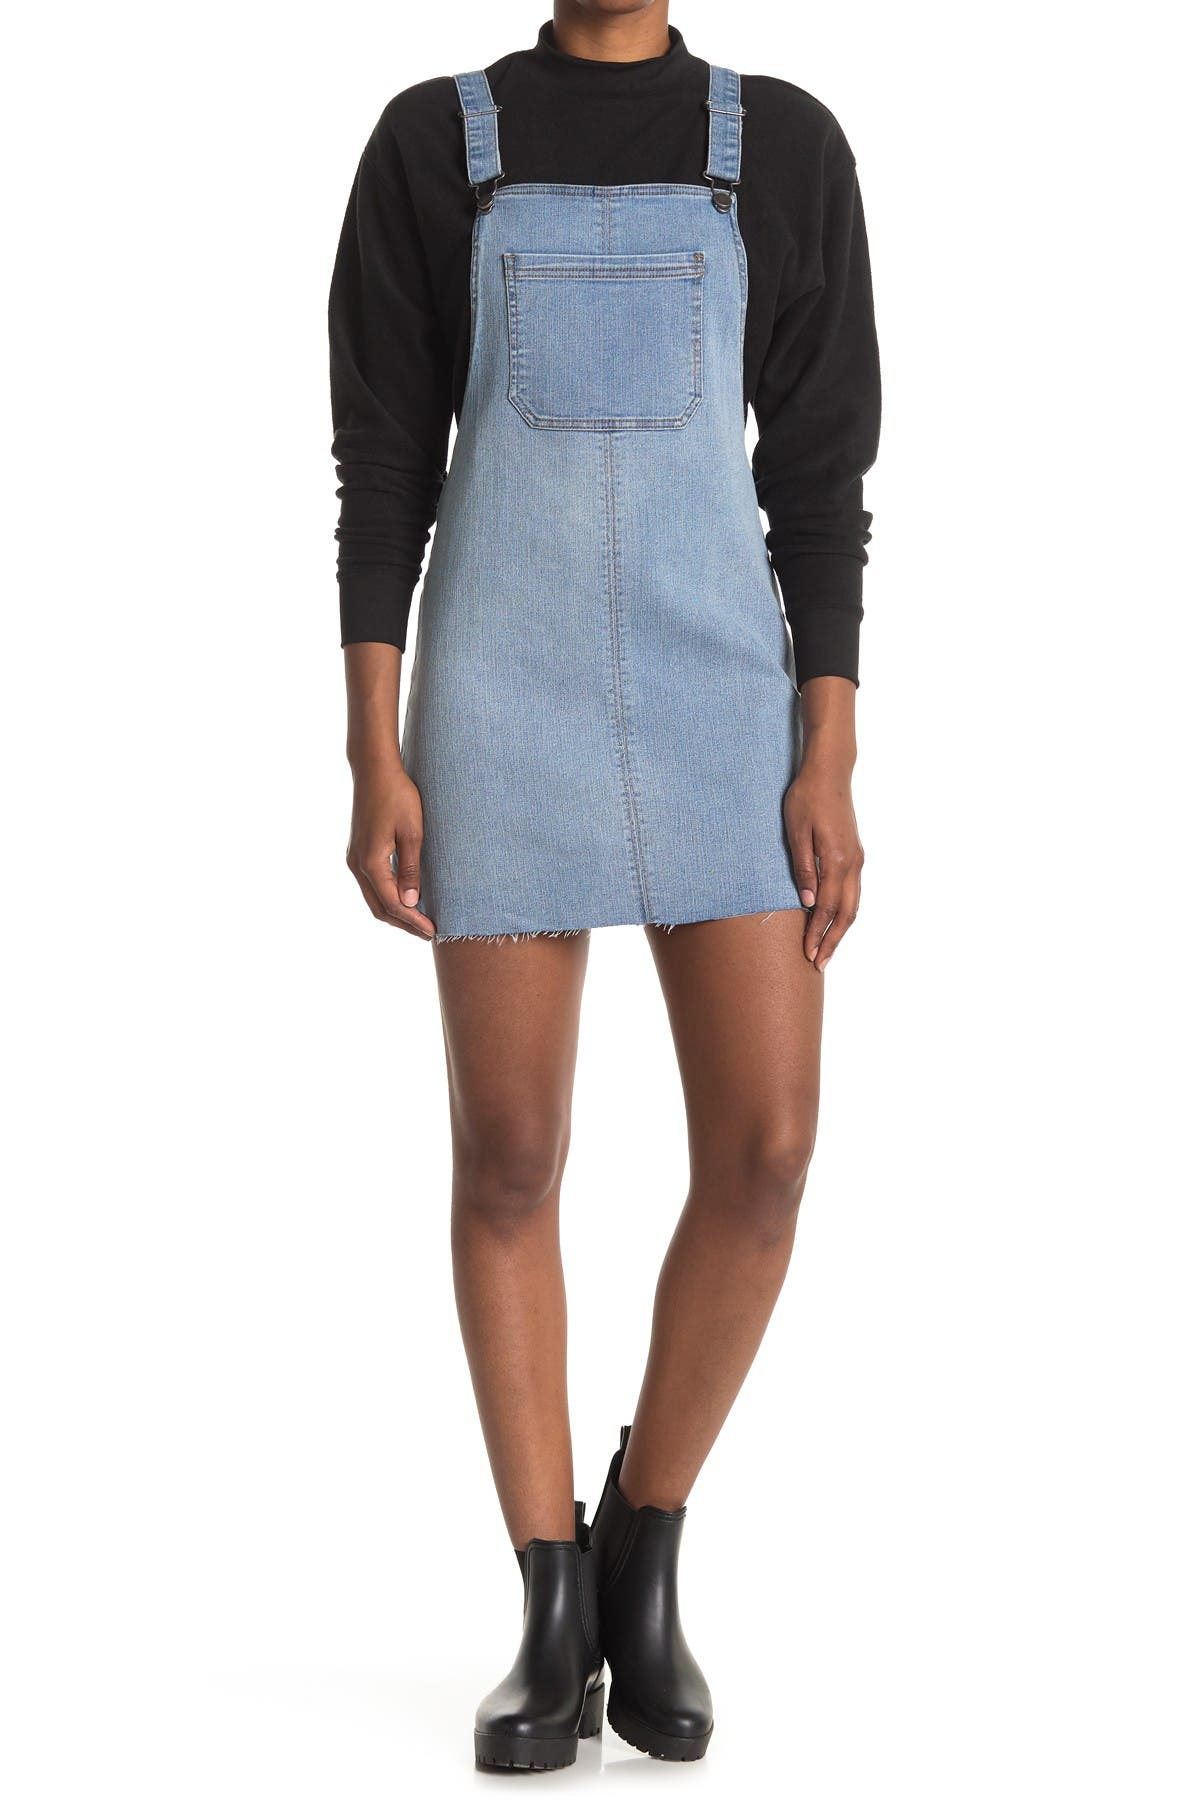 Image of Love, Fire Indigo Denim Overall Dress